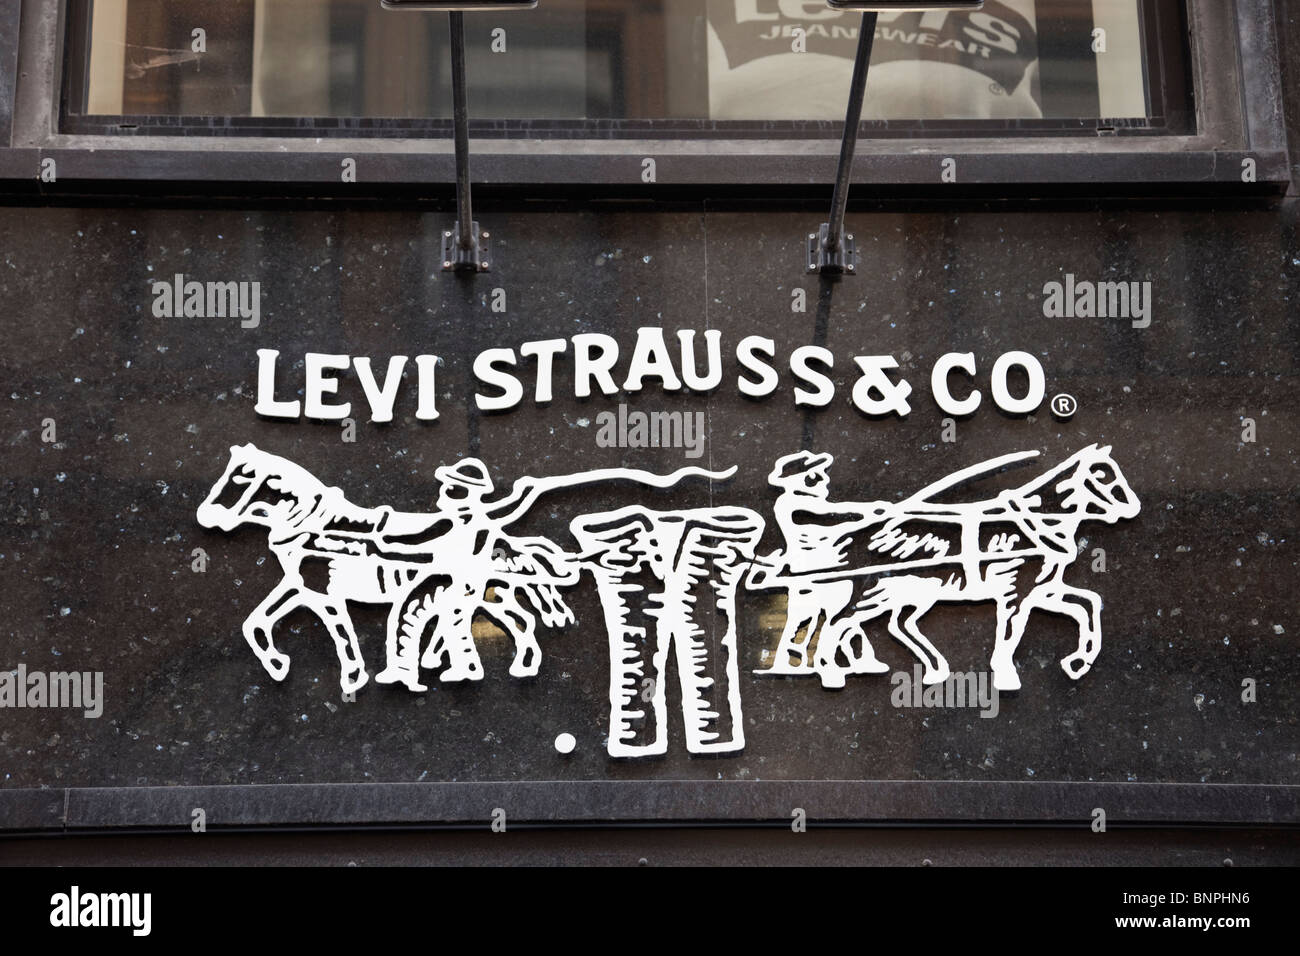 europe levi strauss co sign and logo on a clothes shop. Black Bedroom Furniture Sets. Home Design Ideas